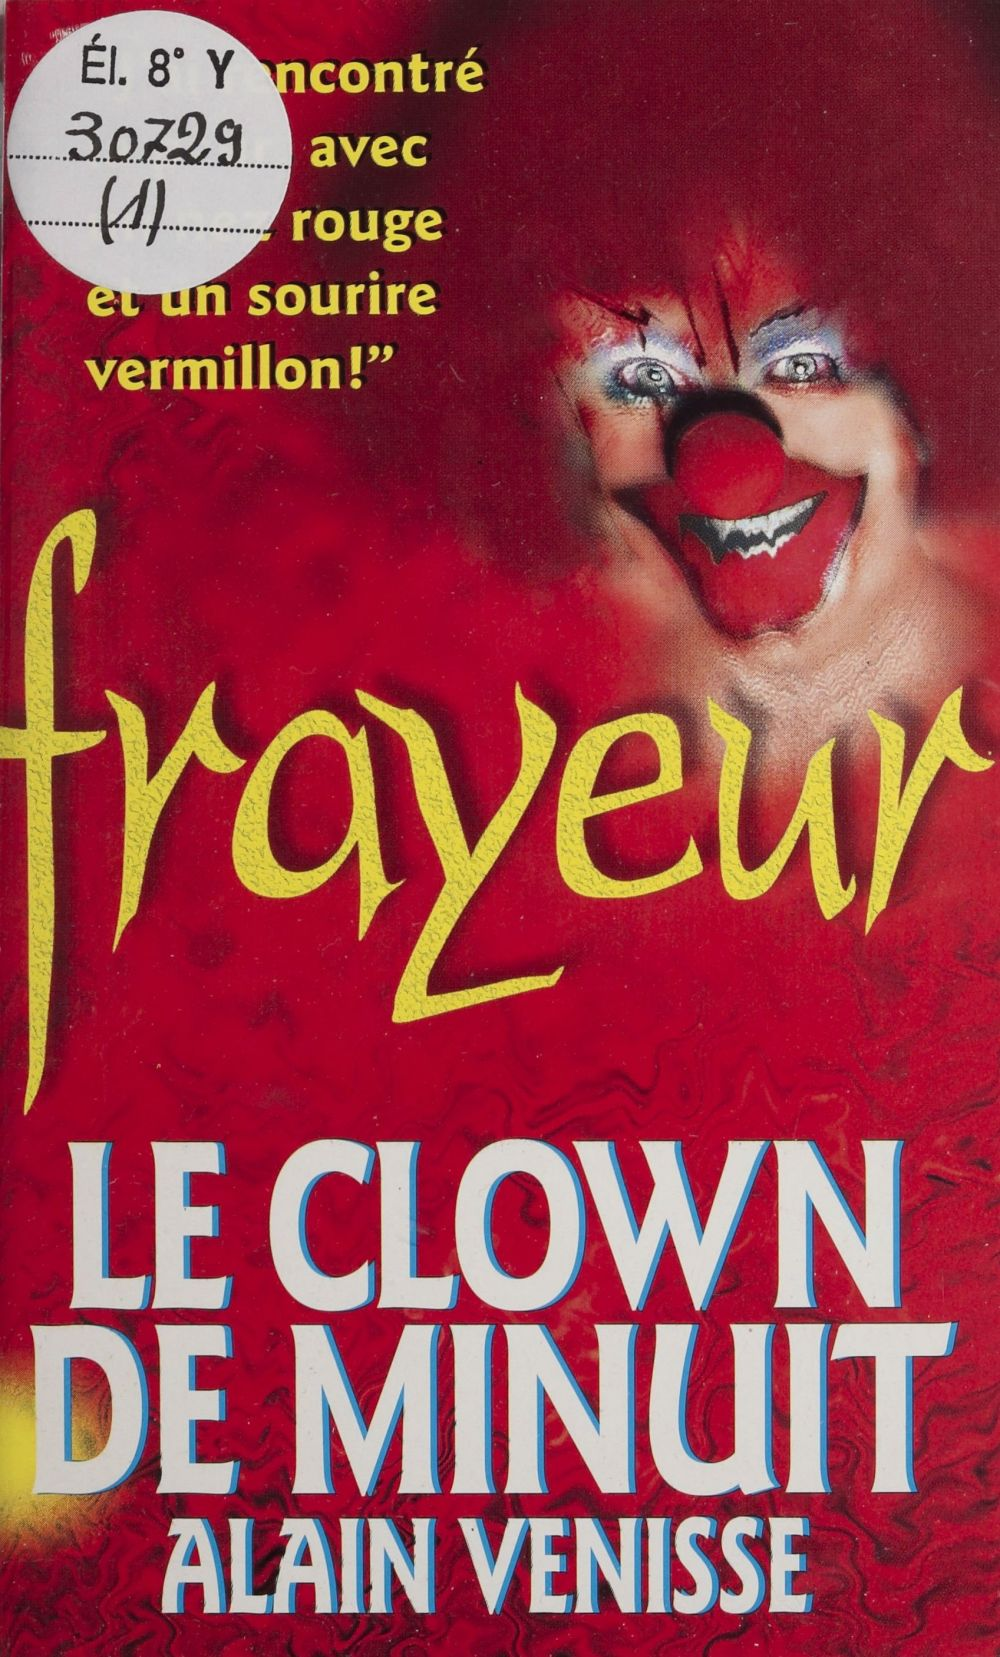 Le Clown de minuit